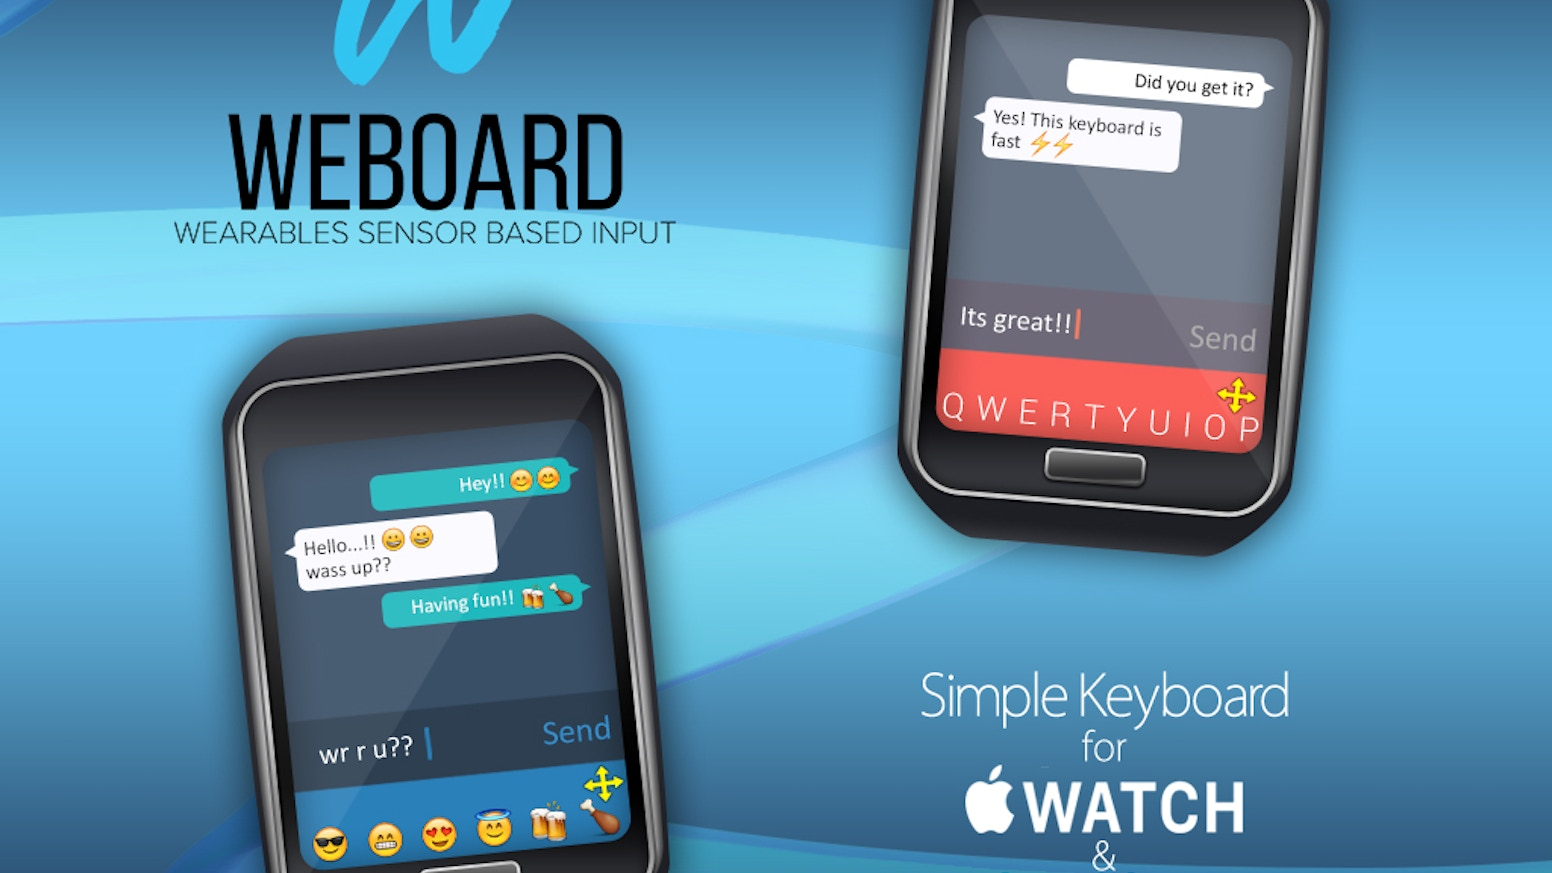 Weboard simple keyboard for apple watch android wear by erik weboard simple keyboard for apple watch android wear biocorpaavc Choice Image